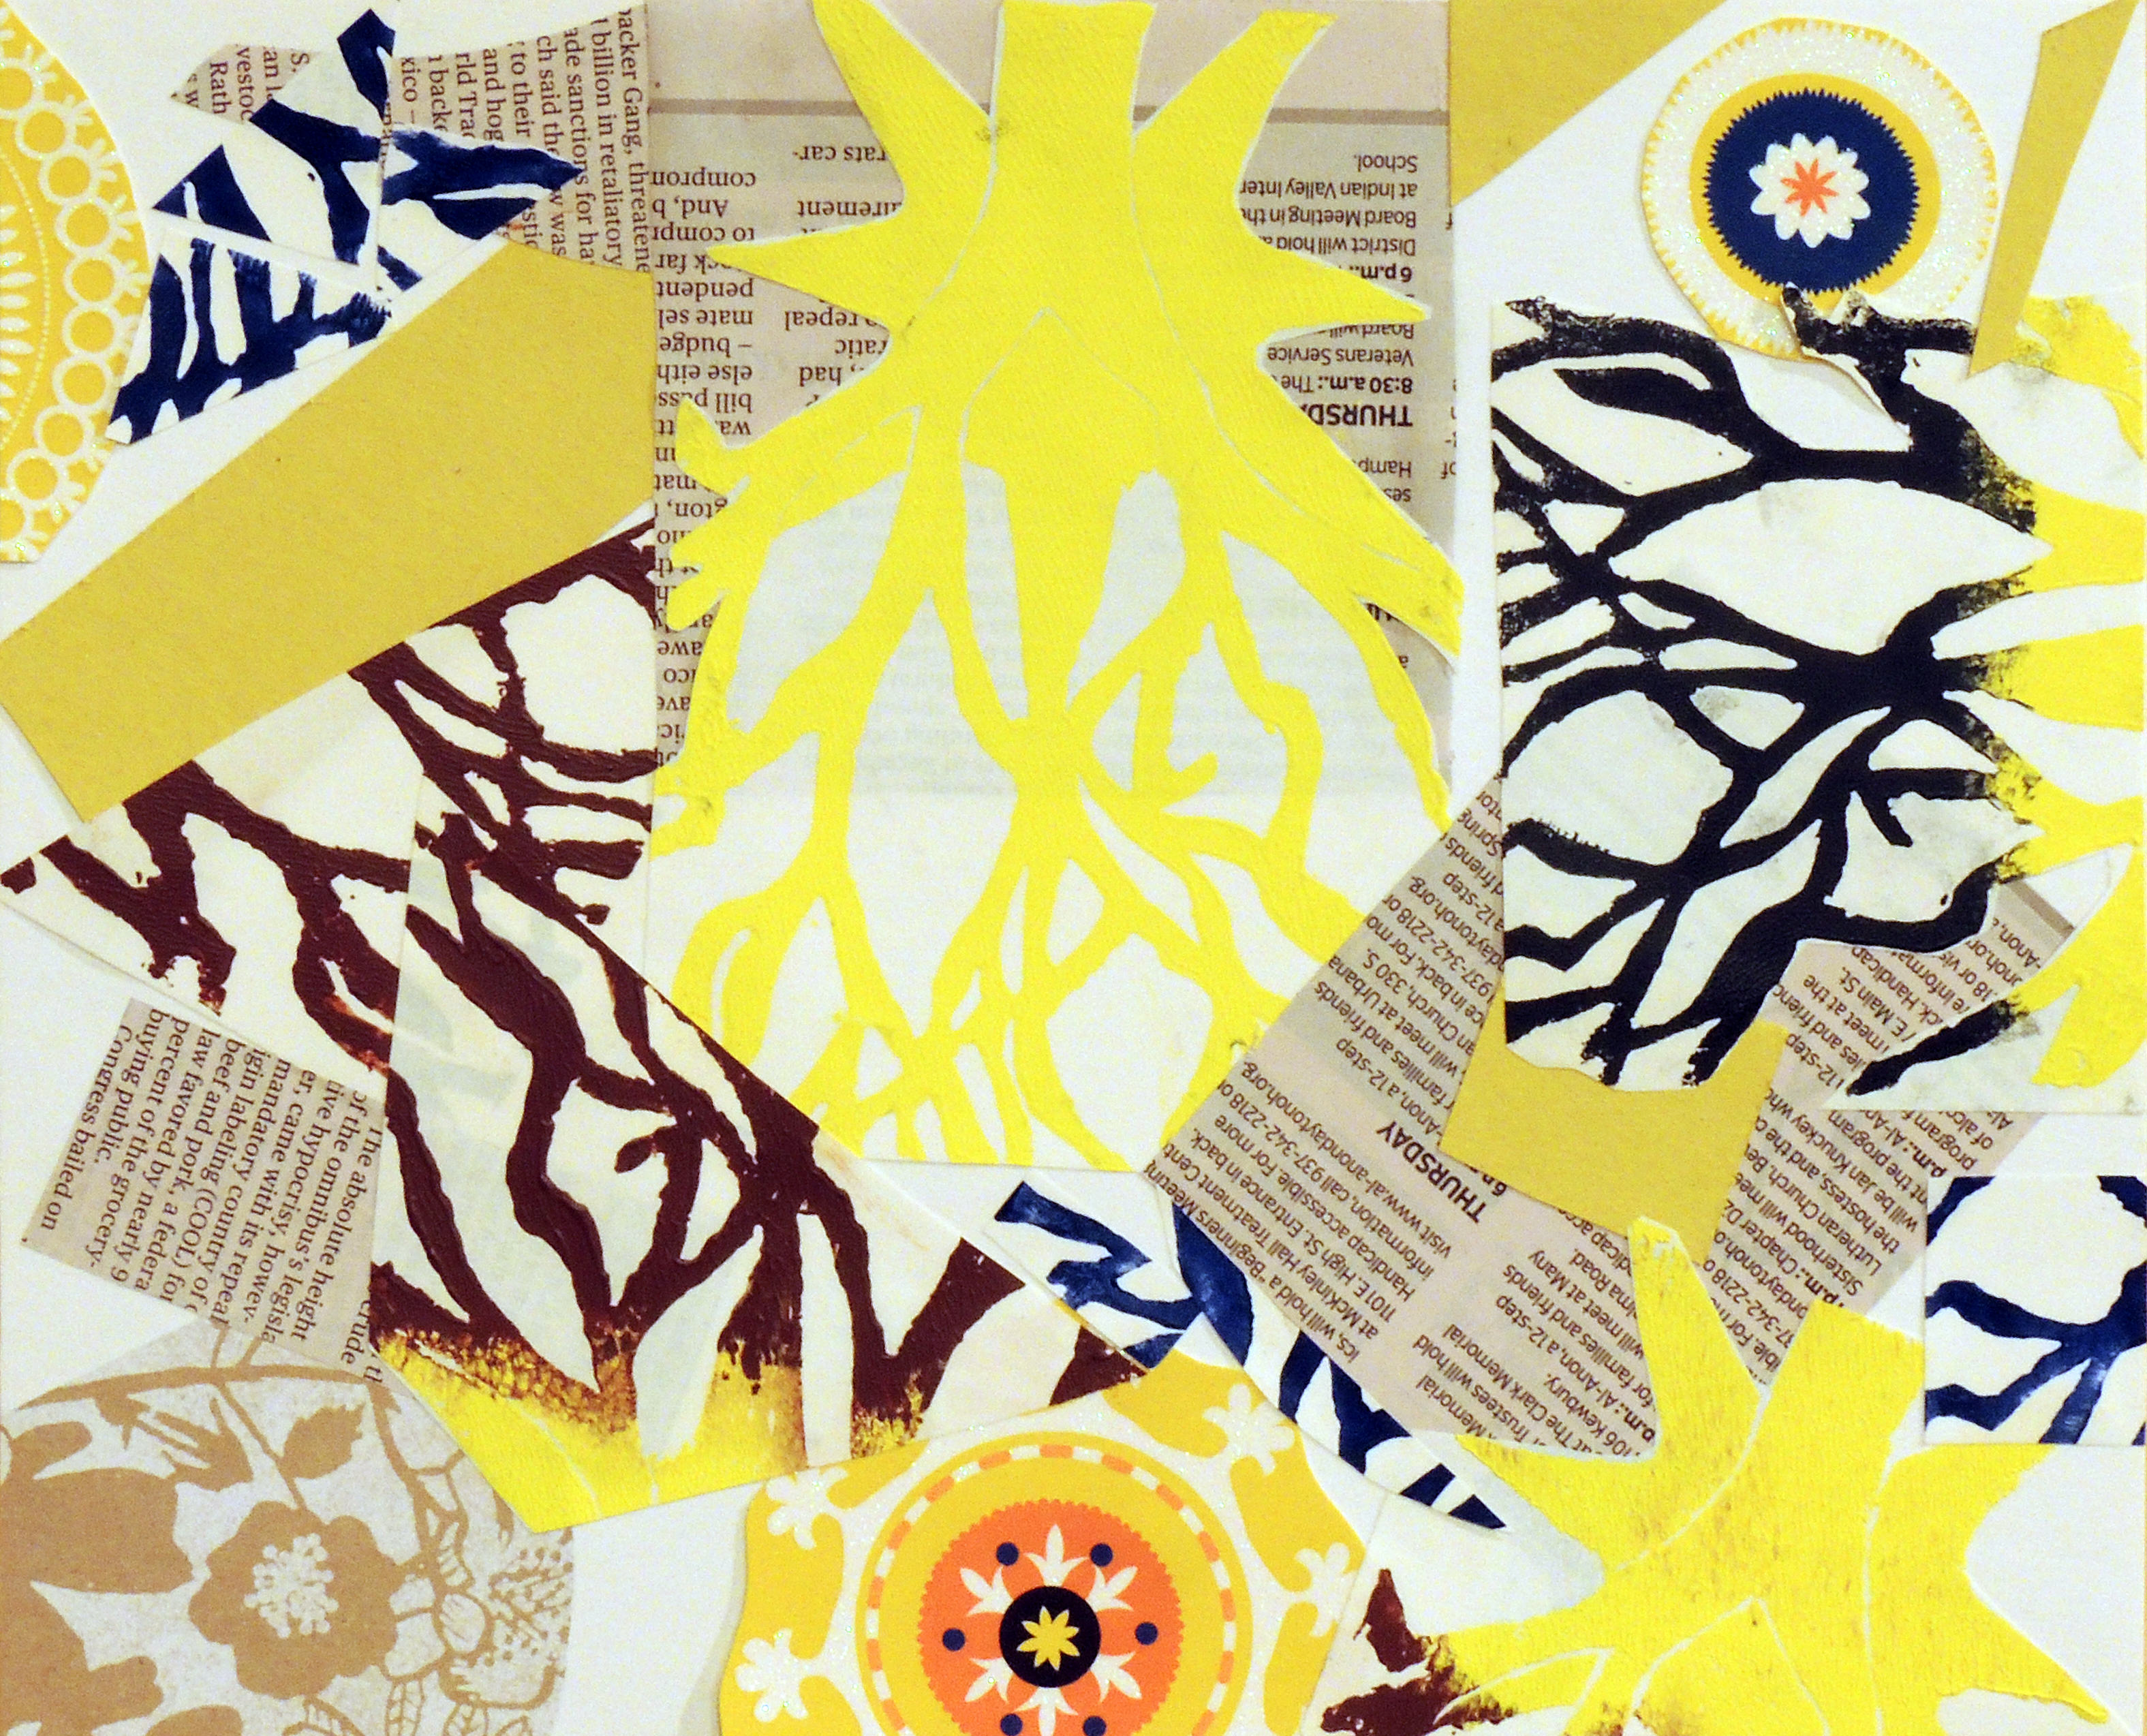 Molly Bline   BRANCHING   relief printmaking & collage   Shawnee High School